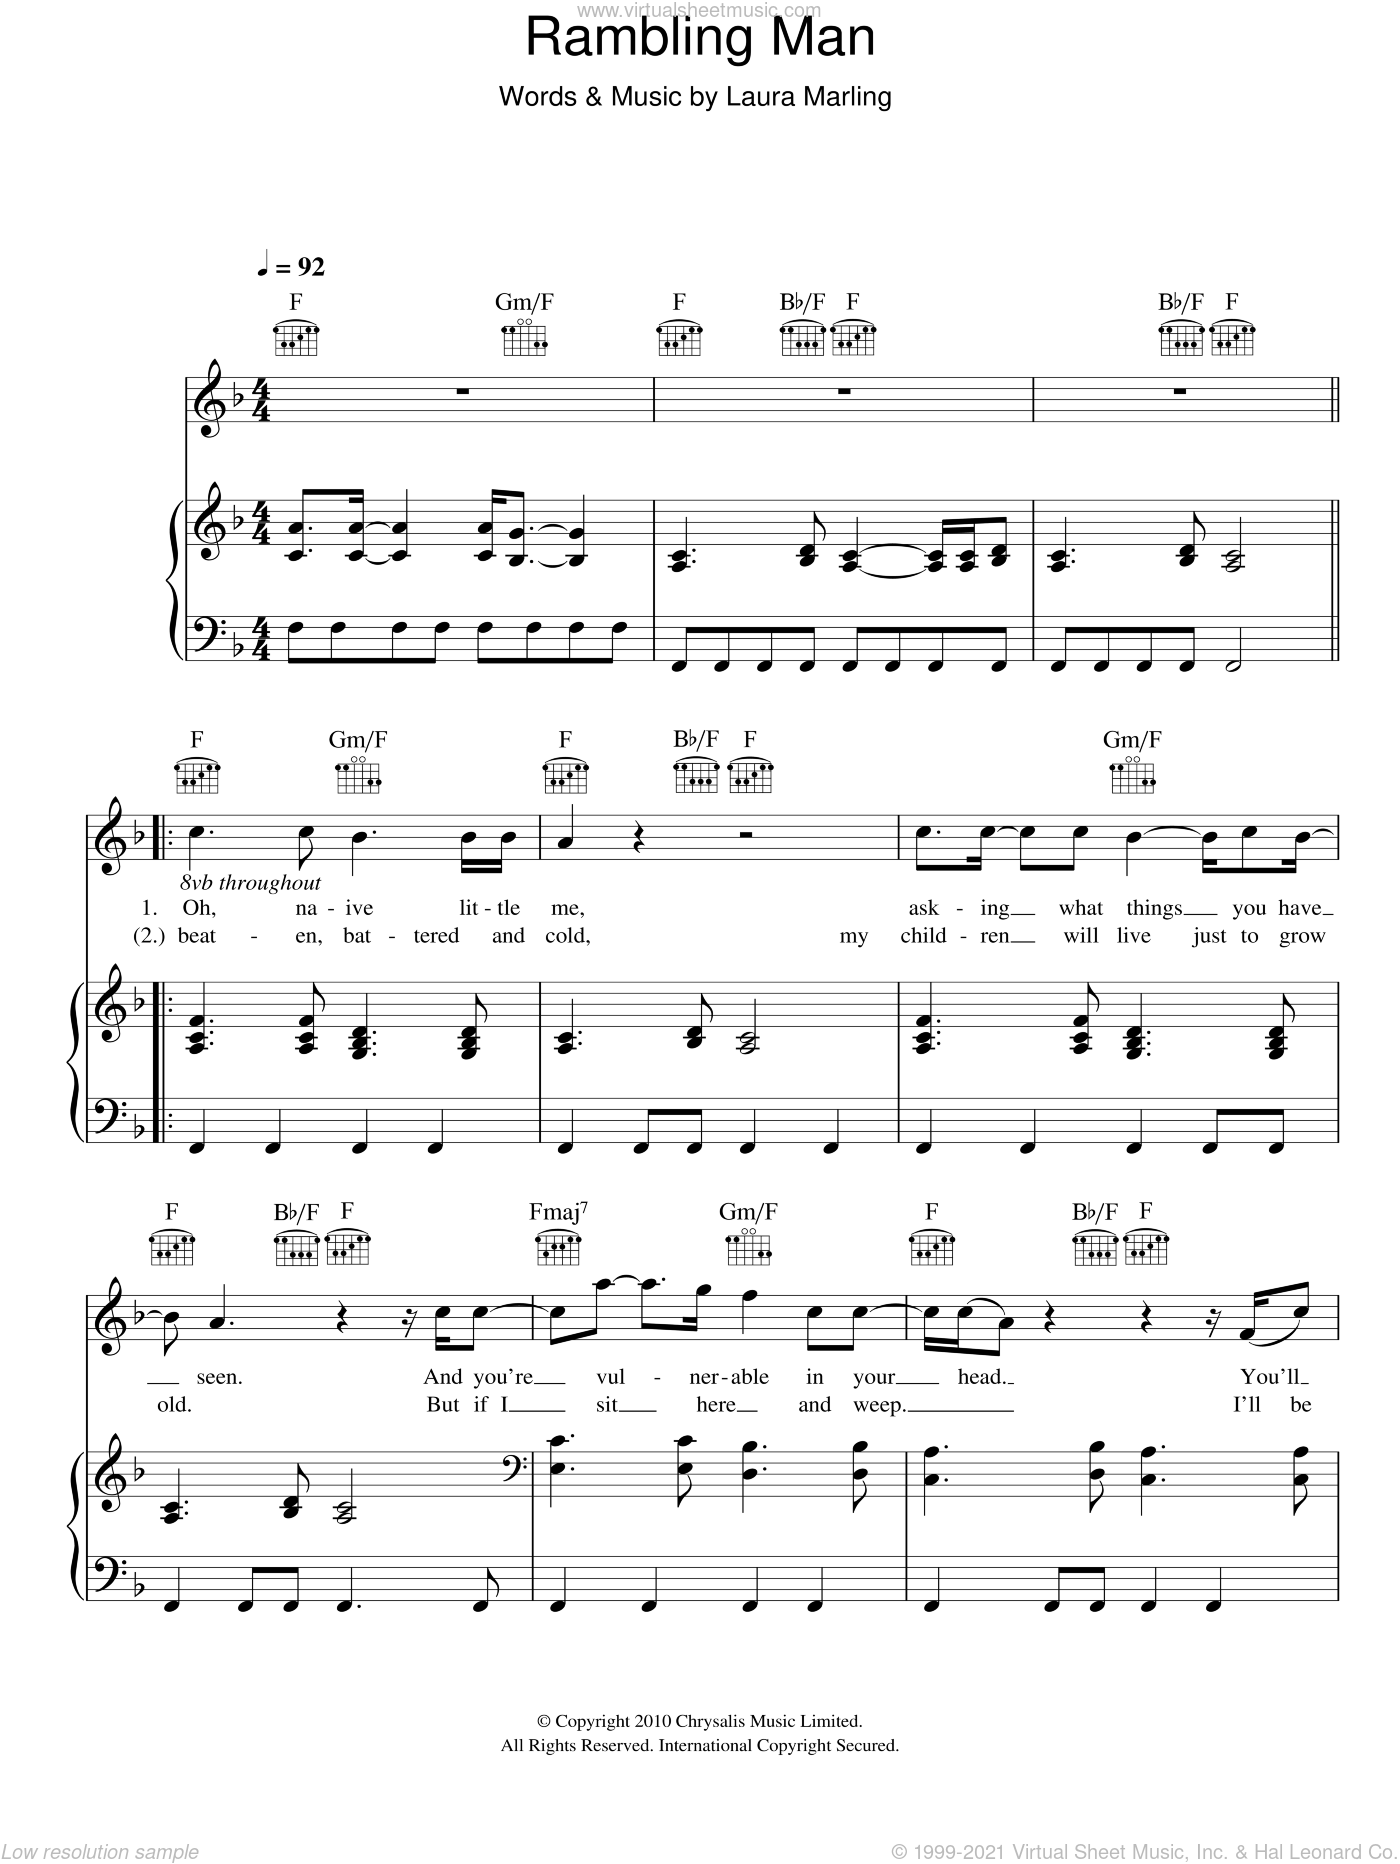 Rambling Man sheet music for voice, piano or guitar by Laura Marling. Score Image Preview.